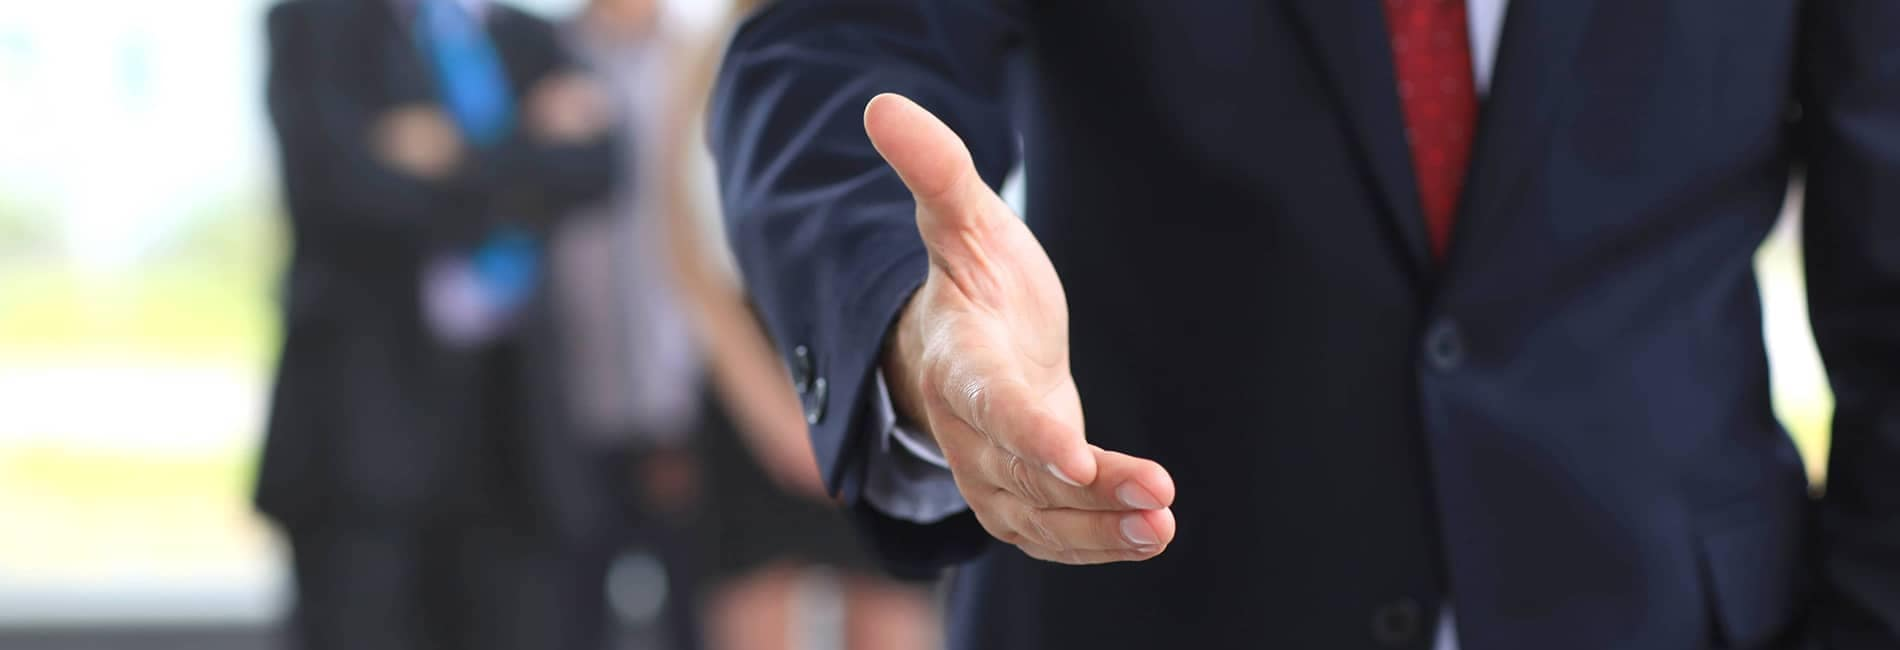 Person in Suit Reaching Out for a Handshake